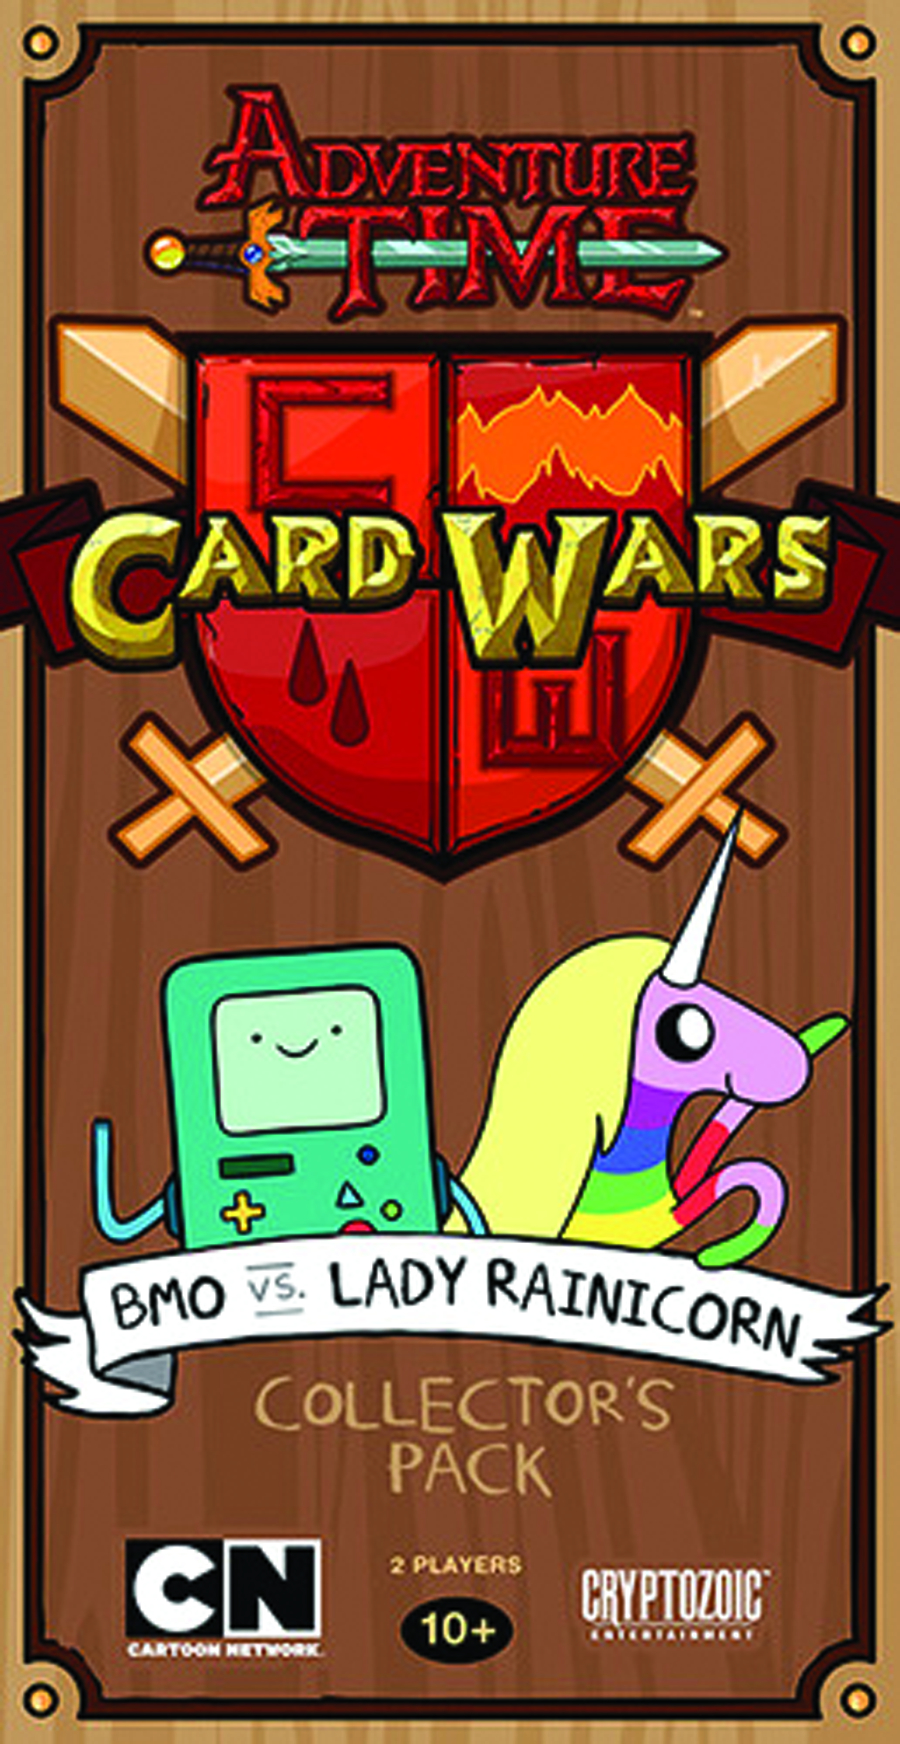 ADV TIME CARD WARS PACK 1 DIS FINN VS JAKE